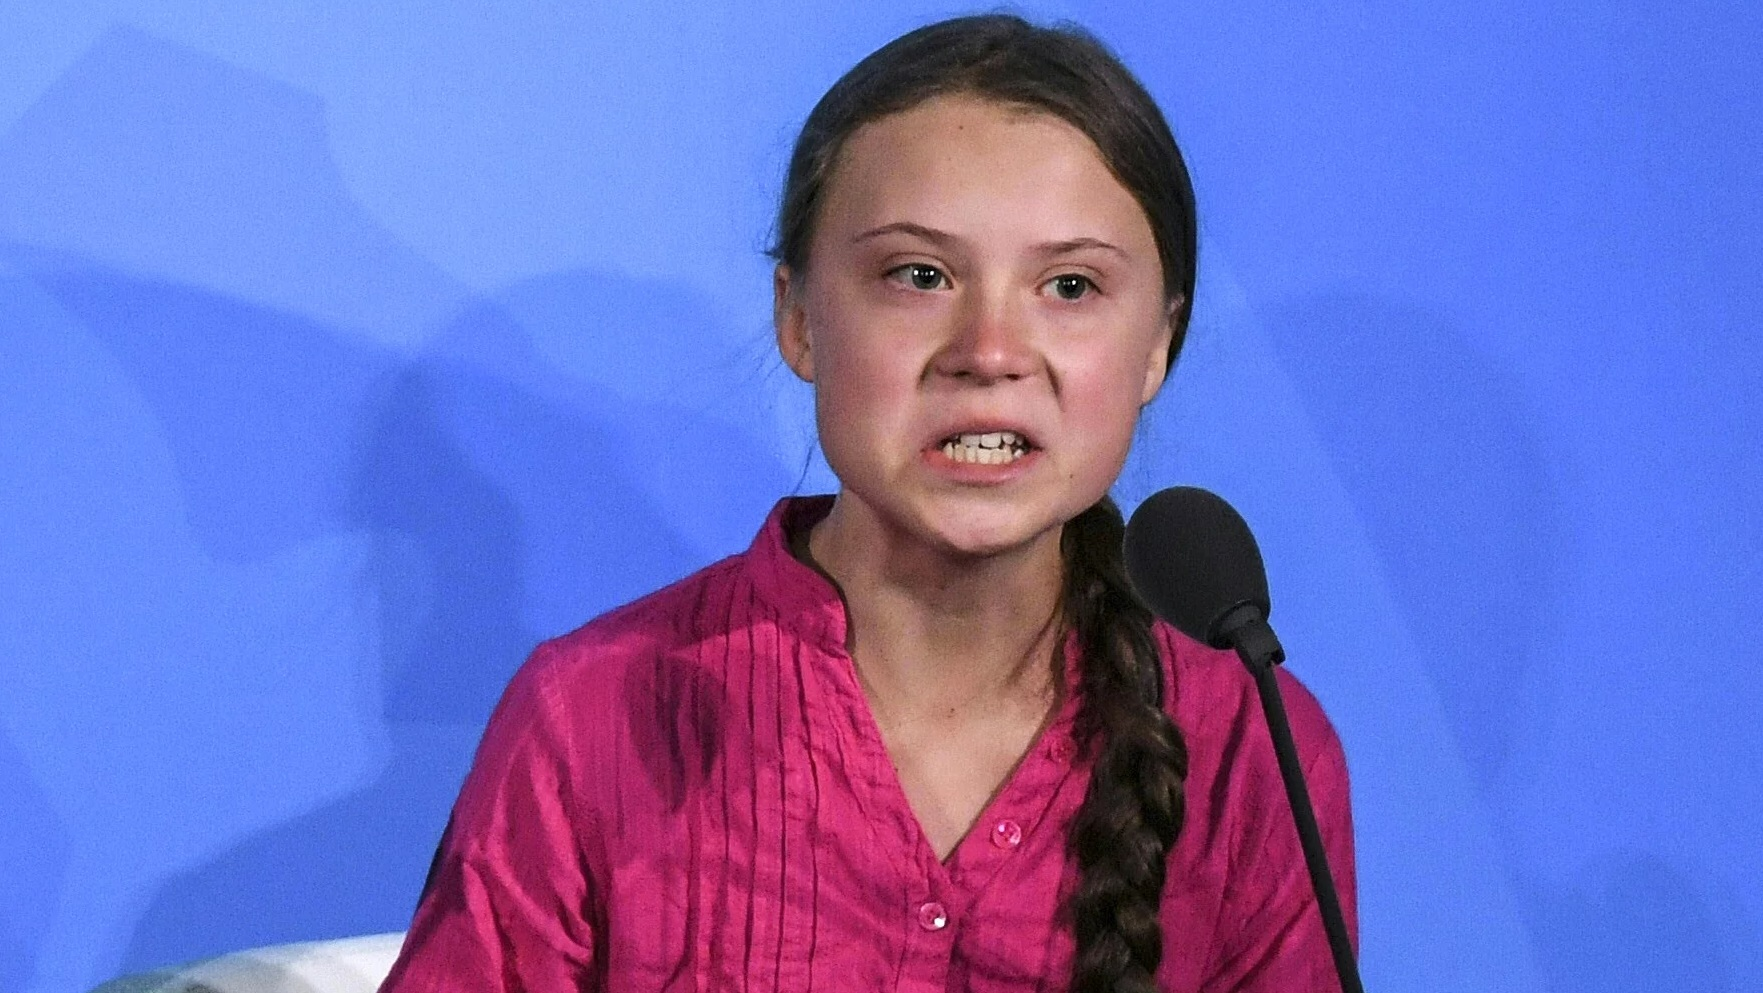 Image: Is Greta Thunberg a political pawn? Thunberg accidentally tweets her social media content is curated by handlers